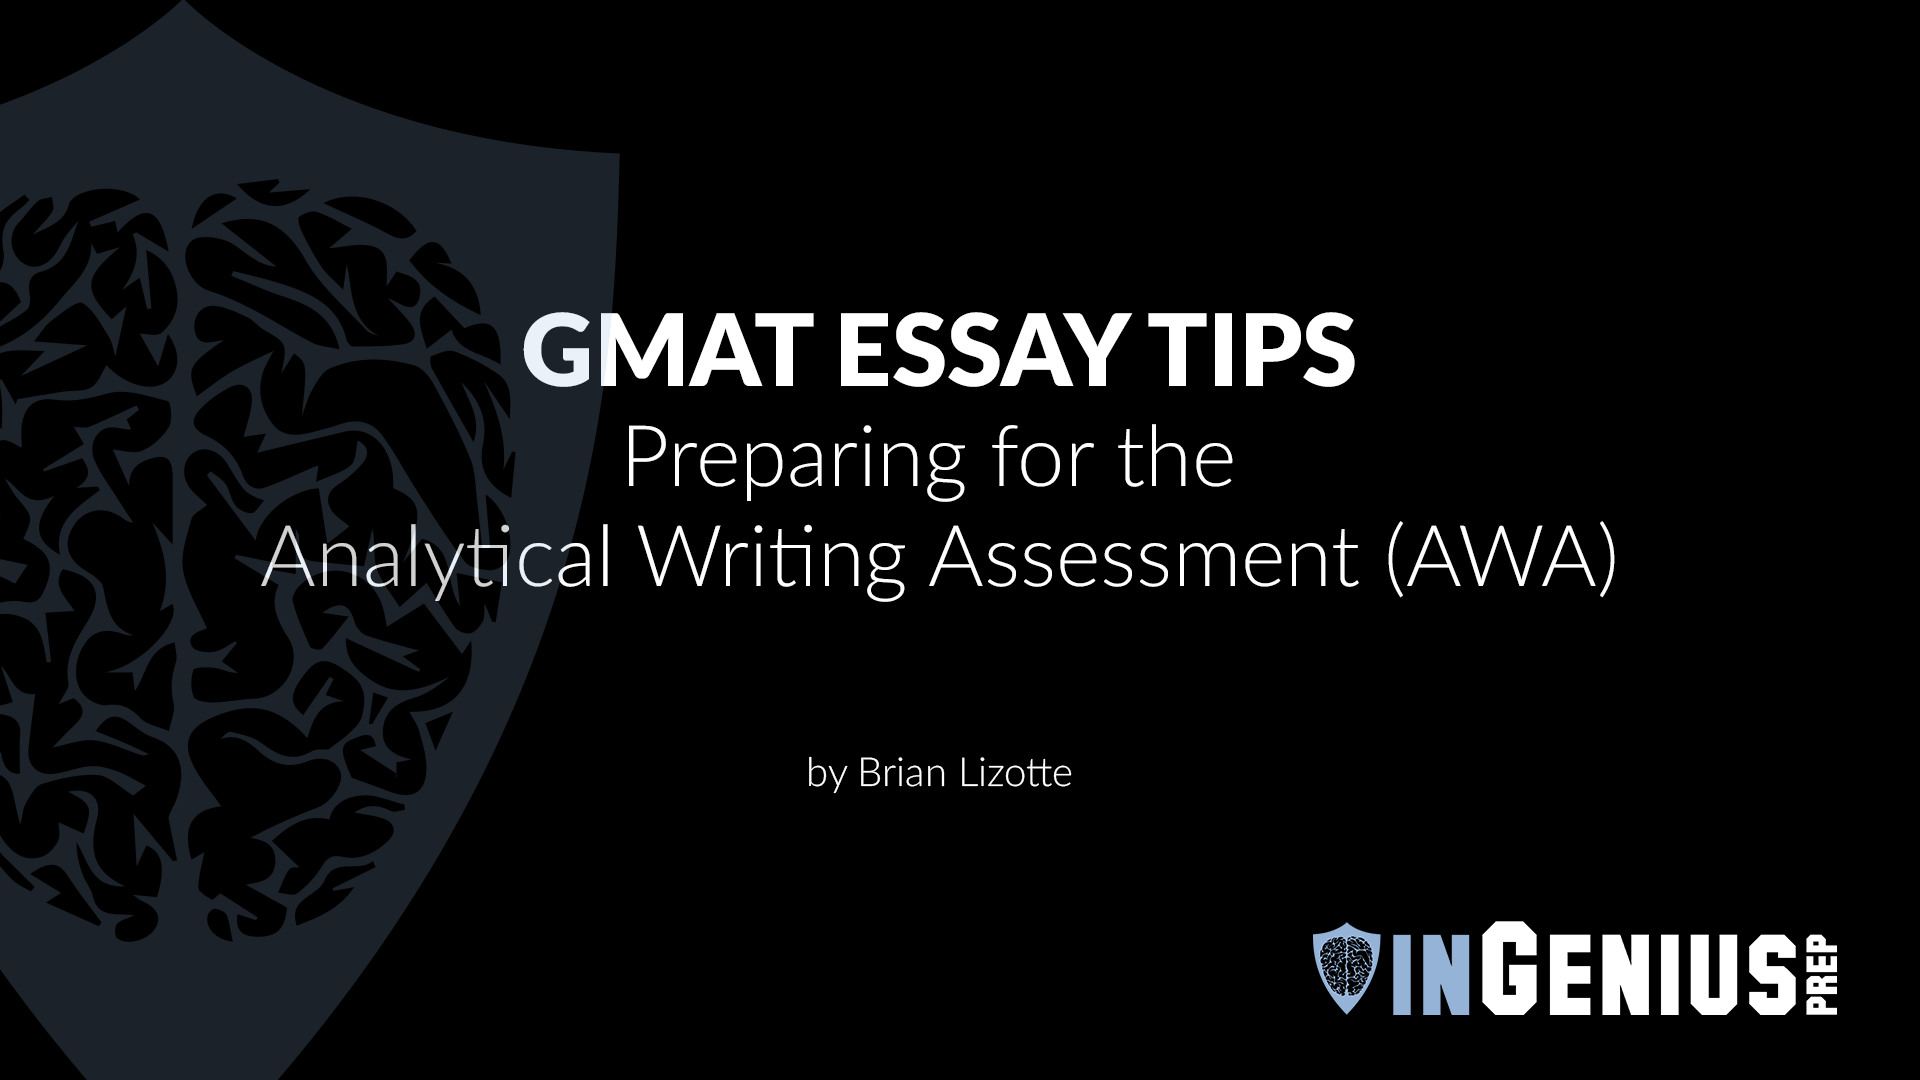 Gmat essay tips preparing for the analytical writing assessment